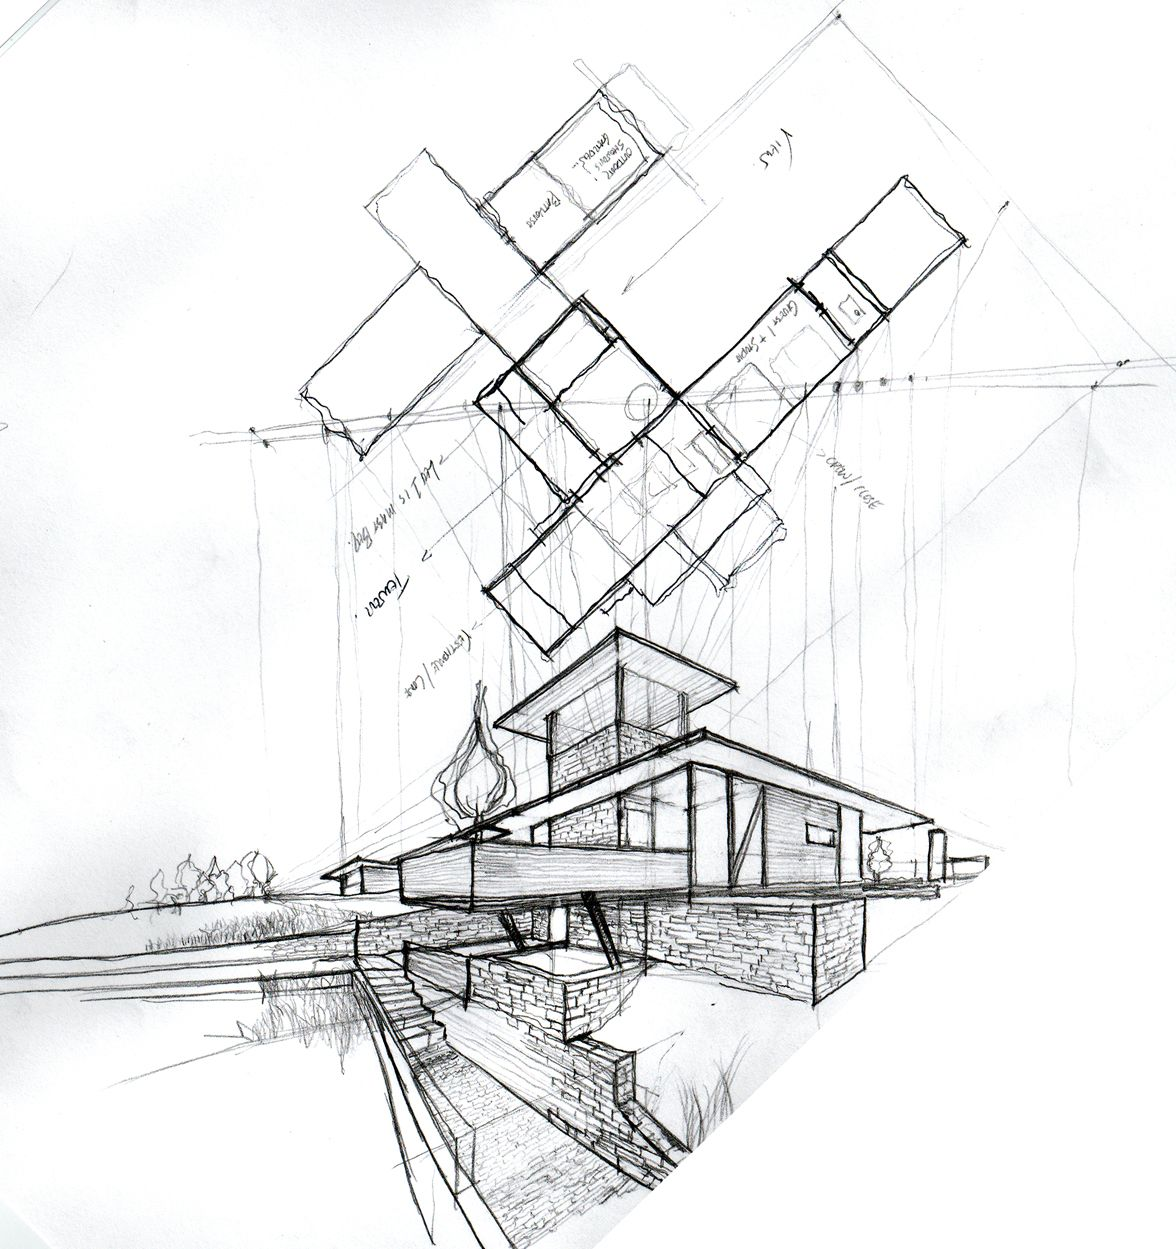 Architecture Houses Sketch 19846 Hd Wallpapers In